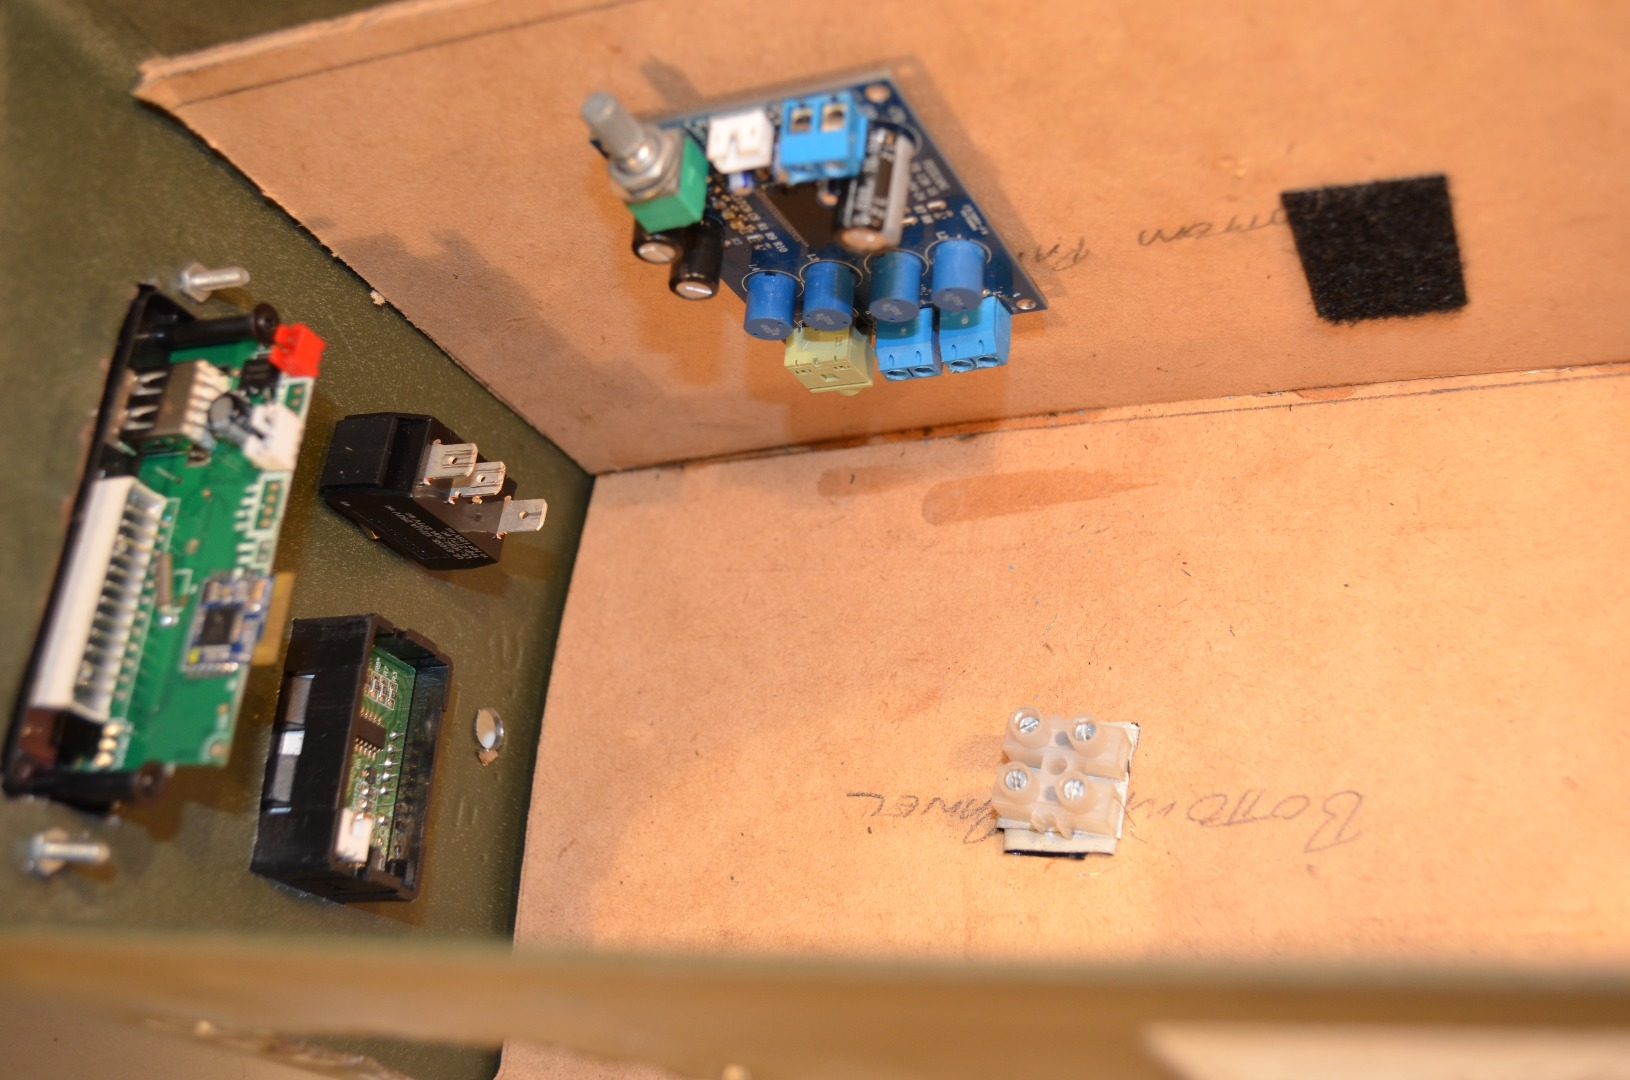 Picture of Plan Where Components Will Be Placed in the Box.